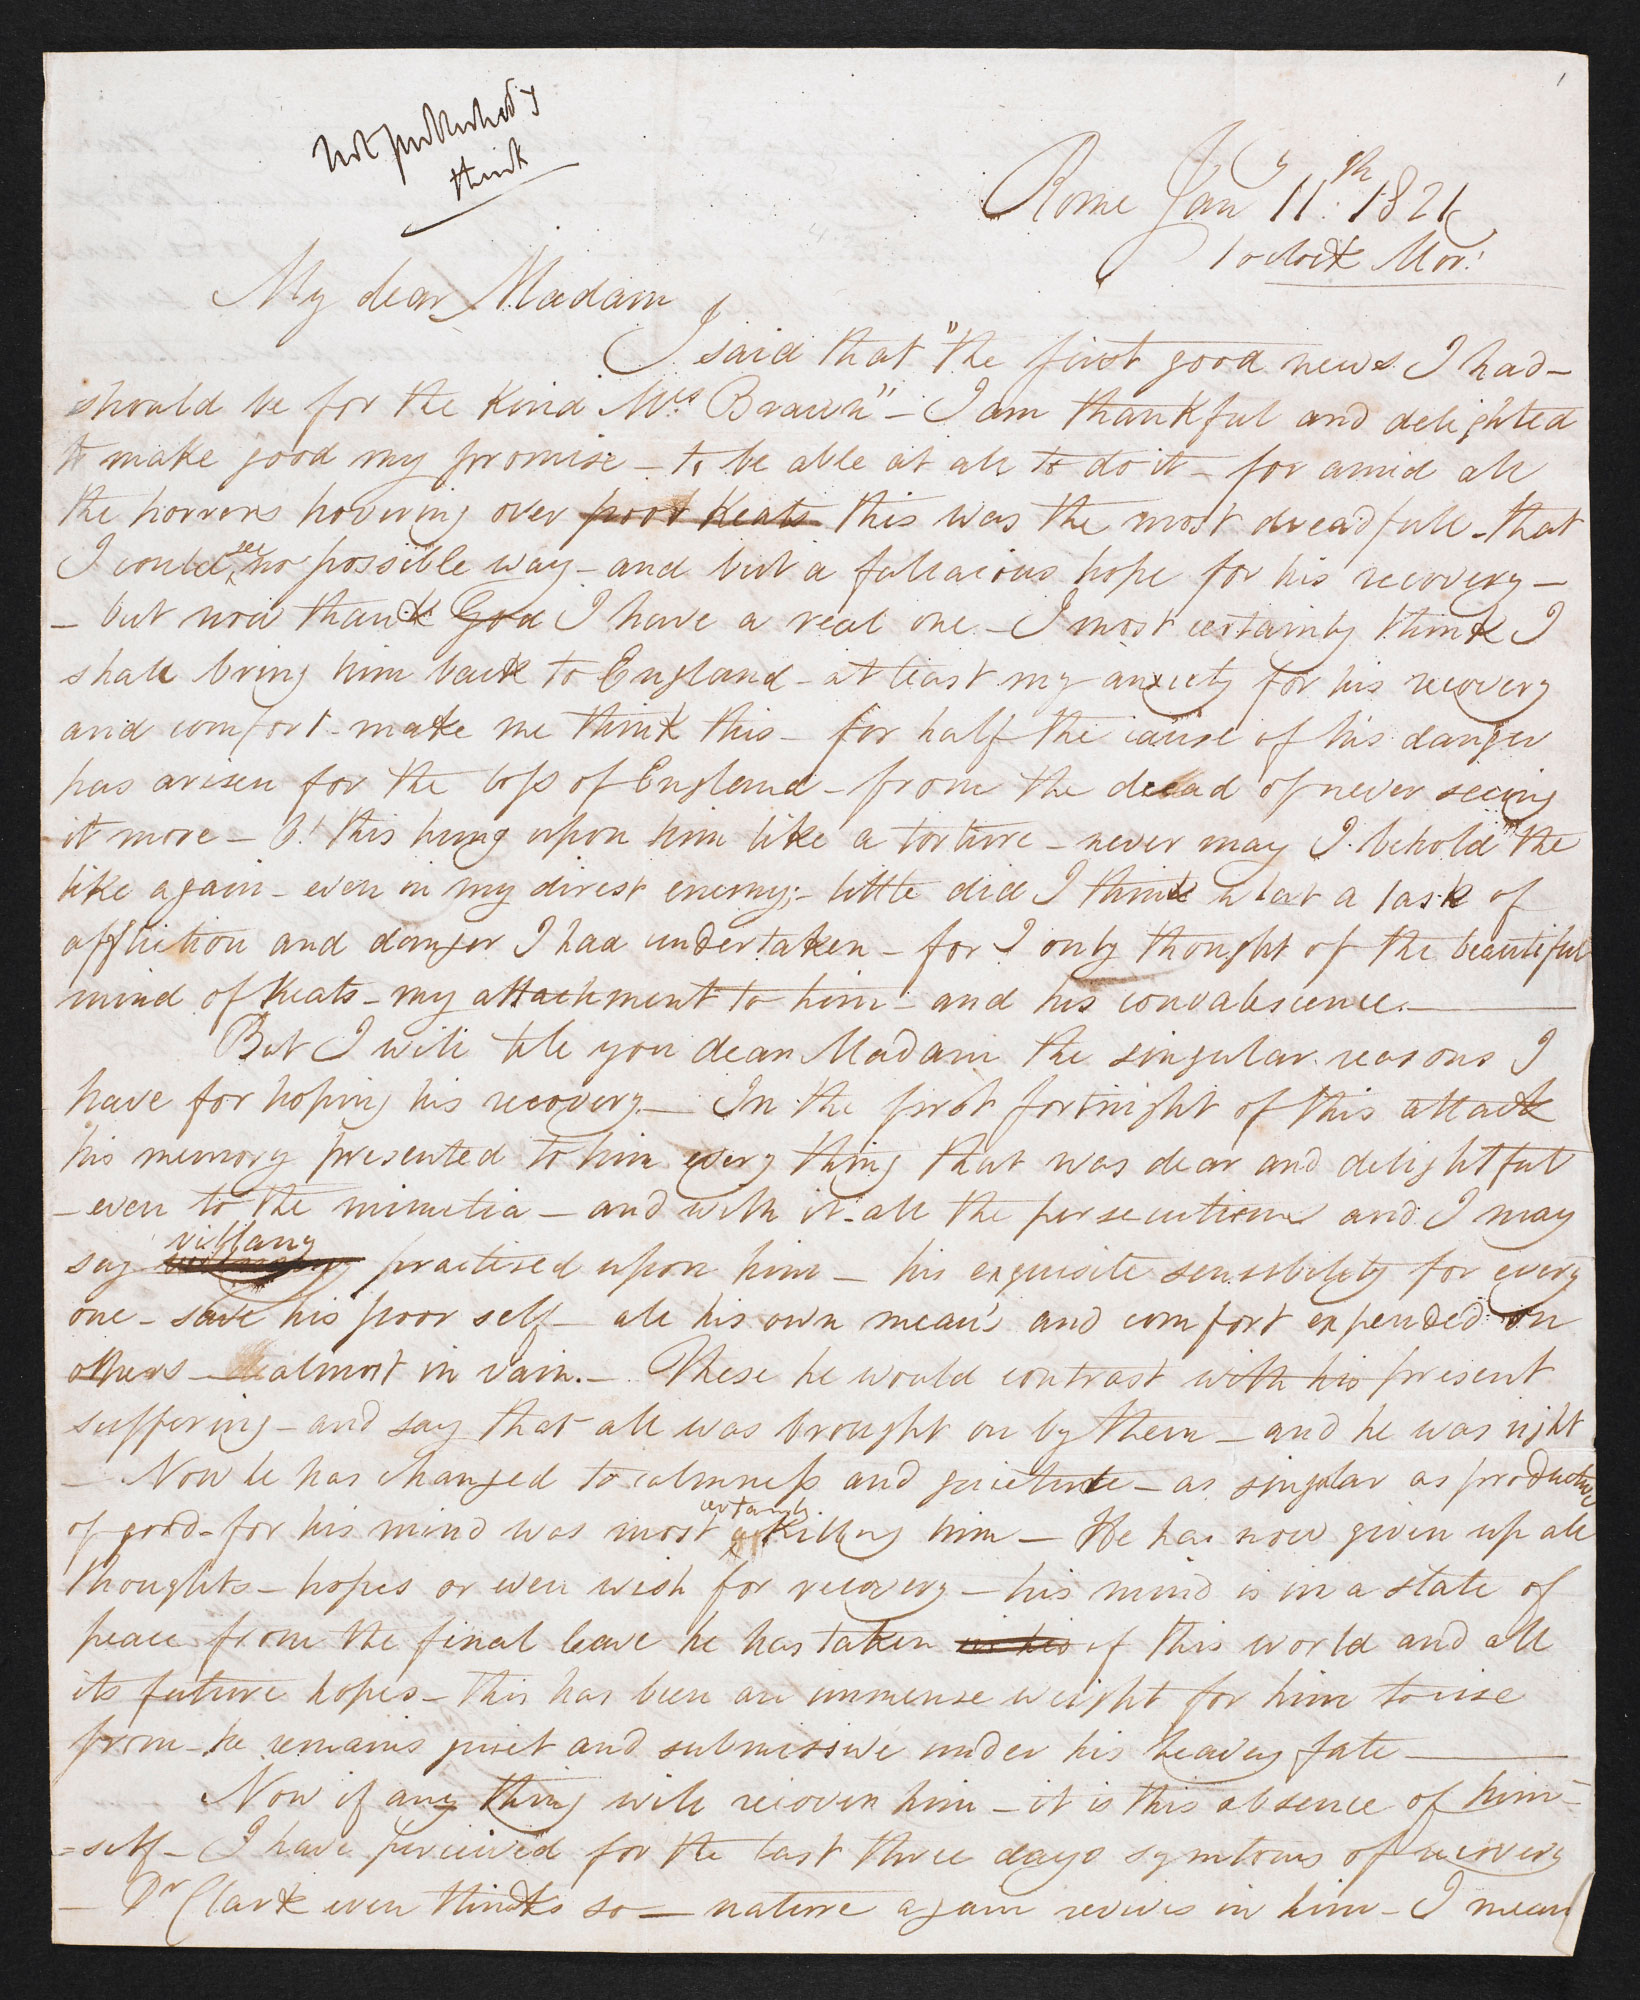 Letter from Joseph Severn about John Keats's last illness